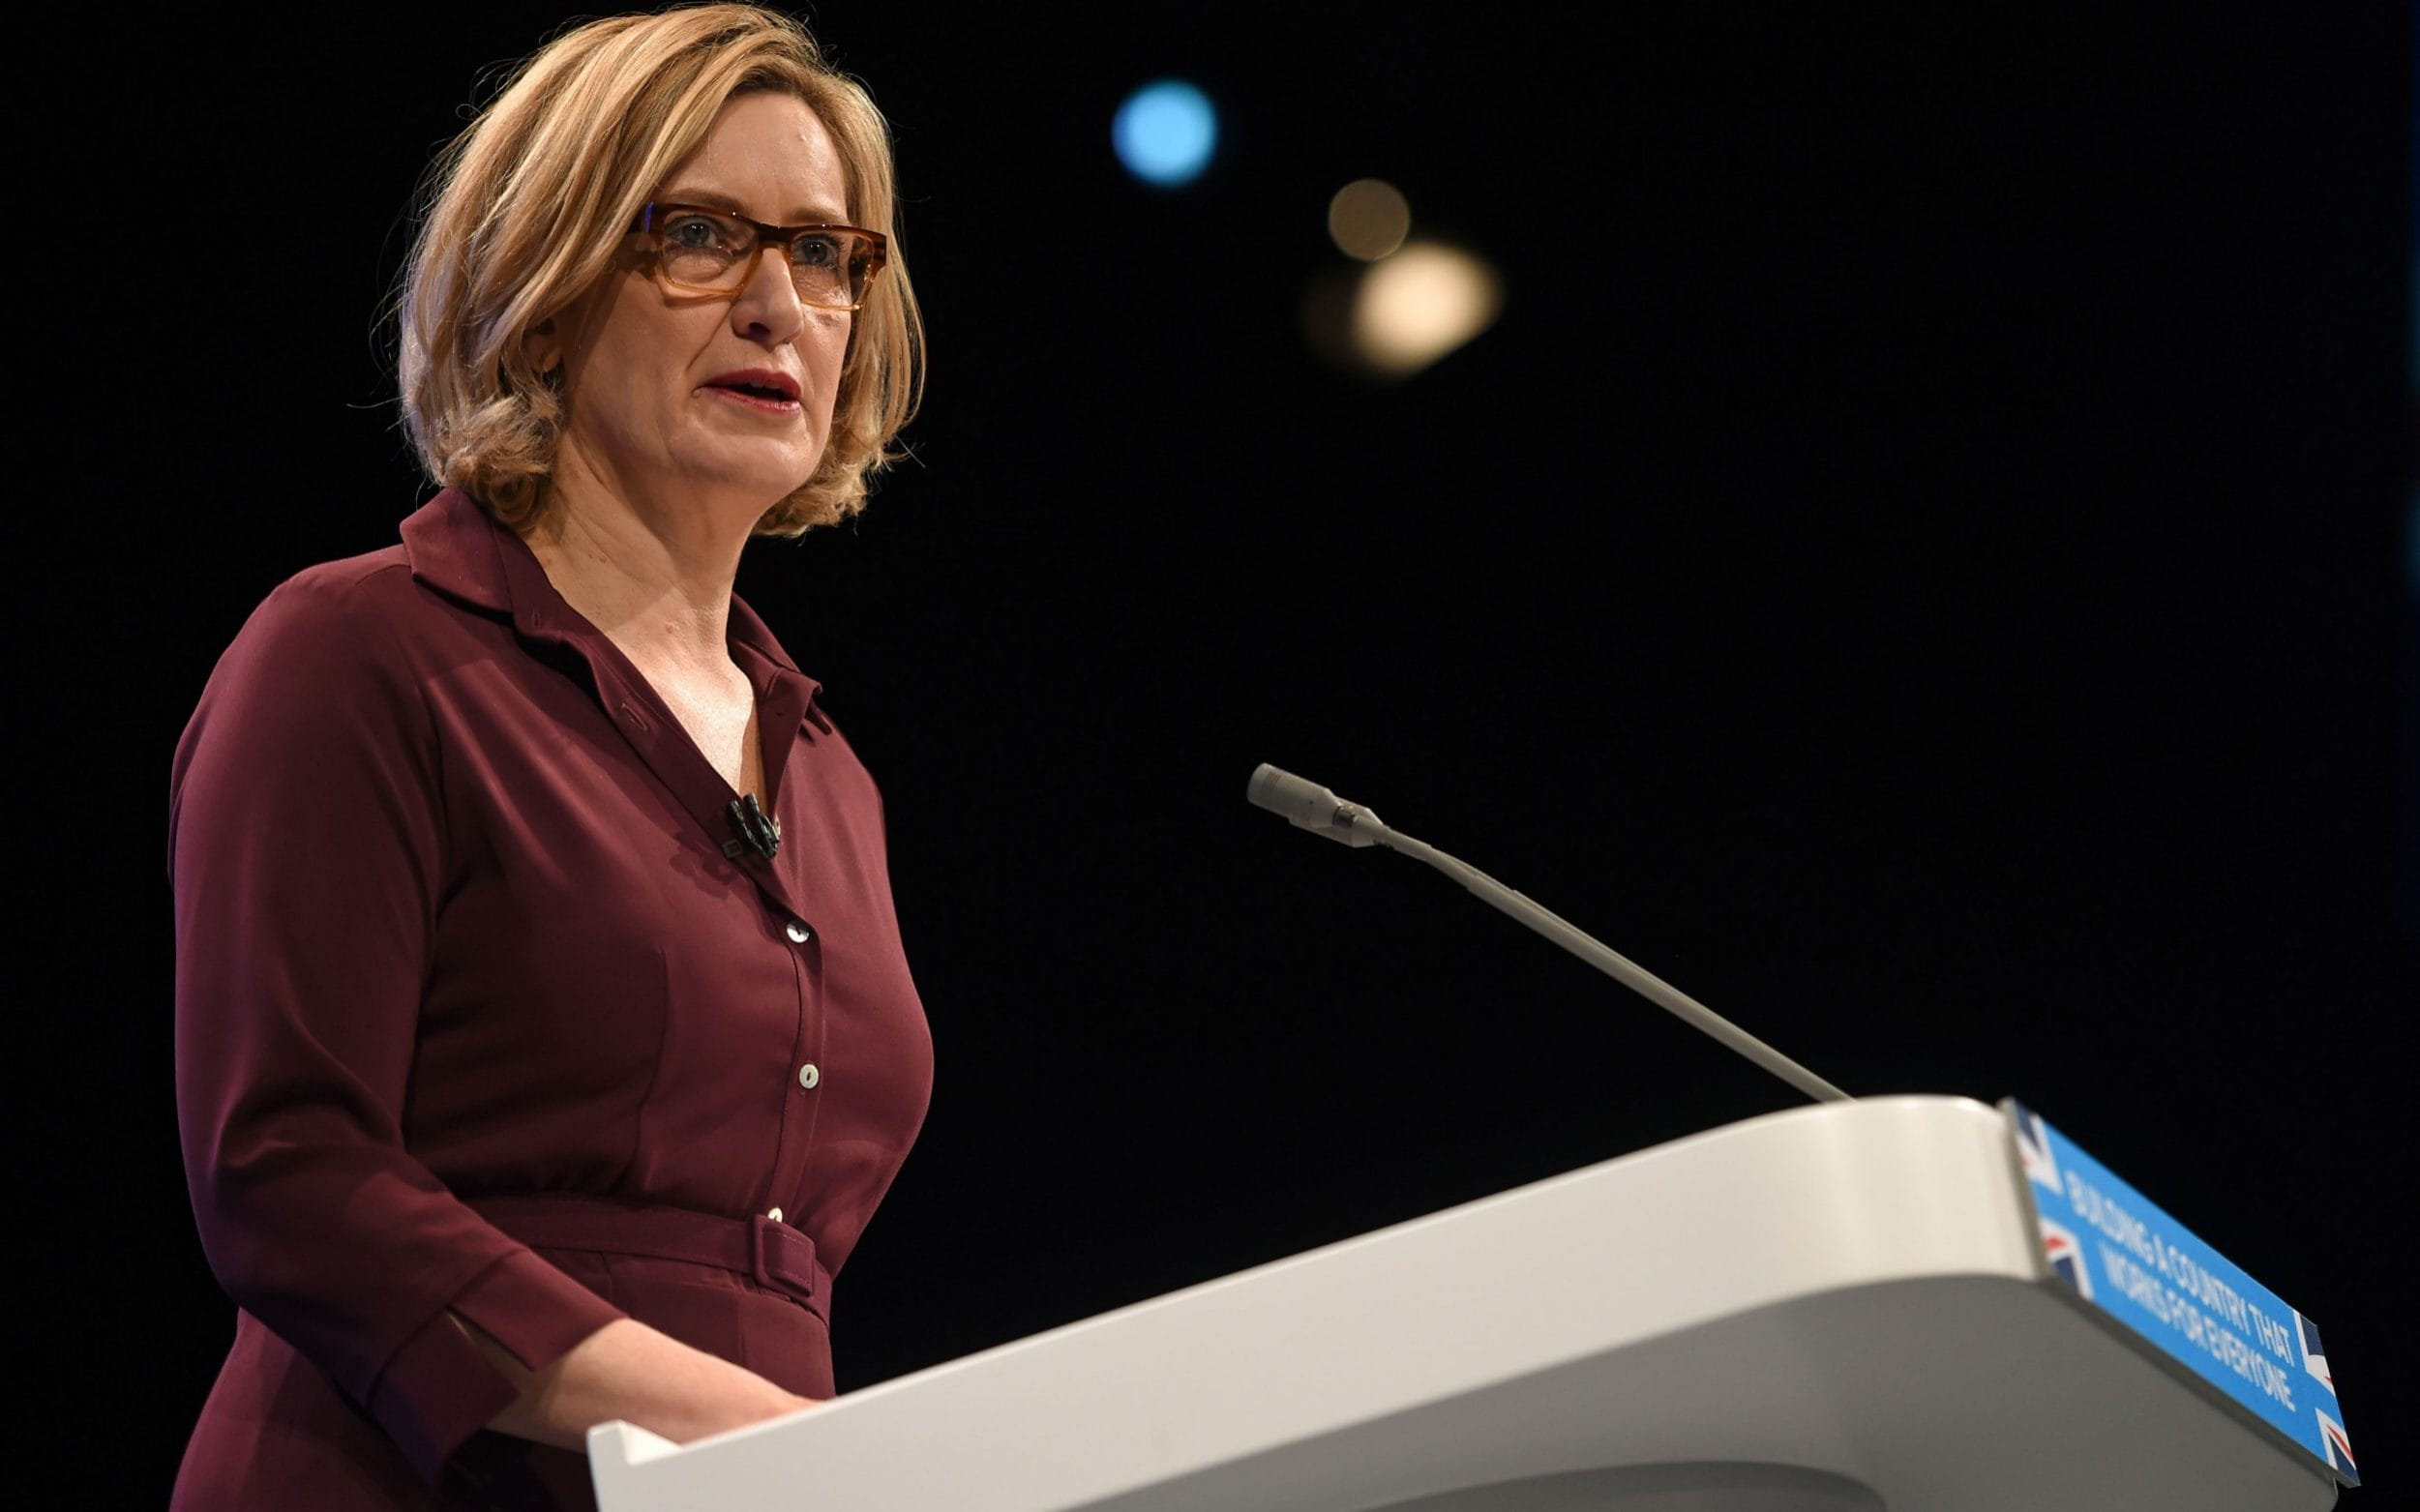 Amber Rudd delivers her speech on the third day of the Conservative Party annual conference